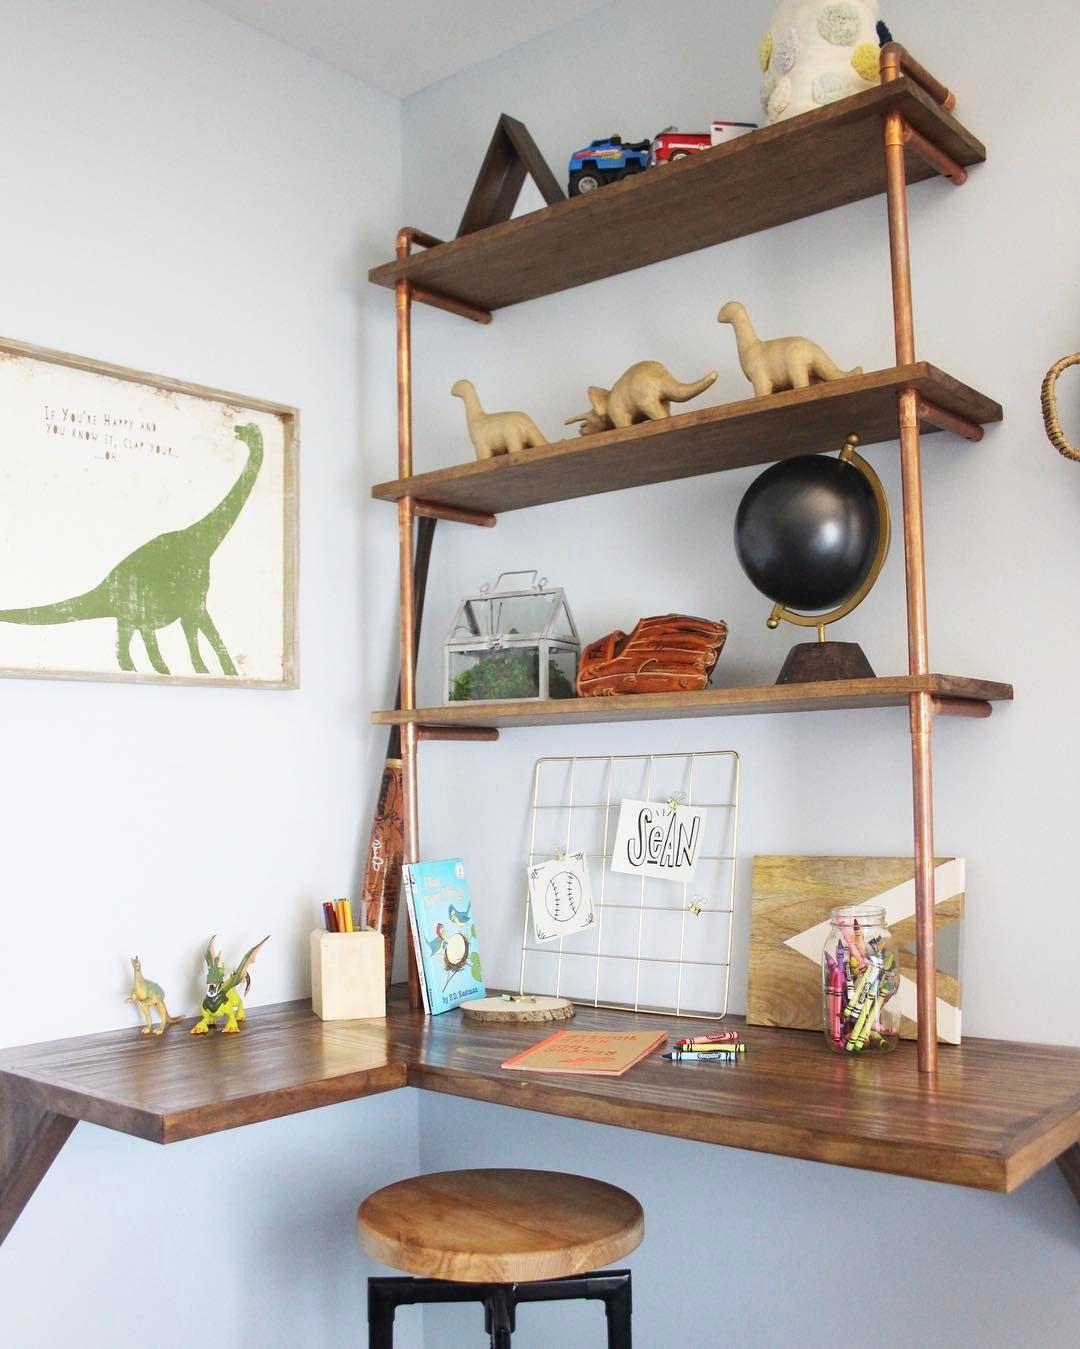 e9d86ed91c Pin by Nicole Lyon on Shelves and How to Style Them in 2019 | Bedroom desk,  Diy pipe shelves, Floating shelves kitchen